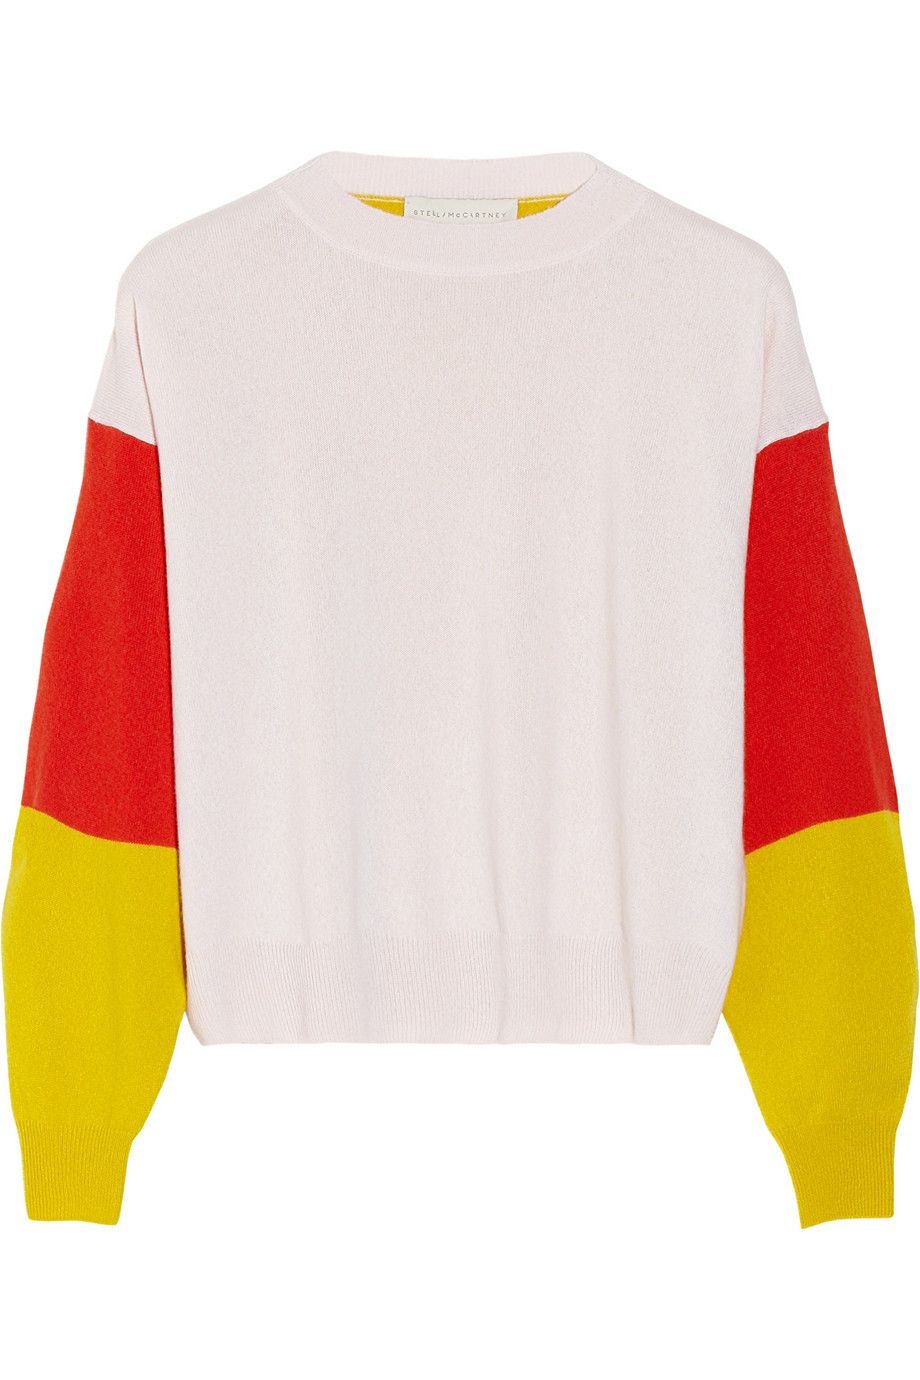 Stella McCartney | Color-block cashmere sweater | Yes, Please ...